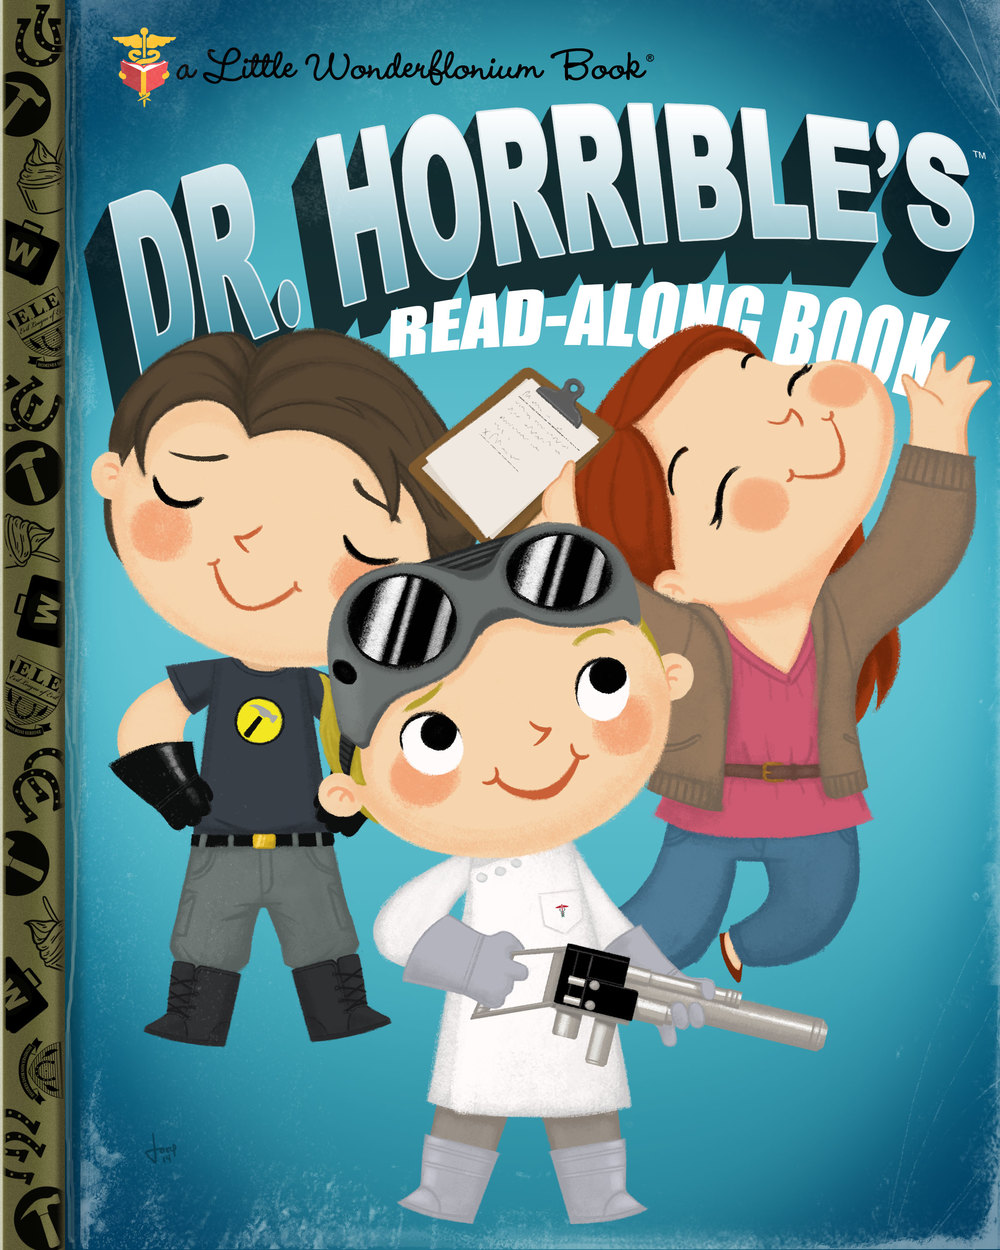 DrHorrible.jpg